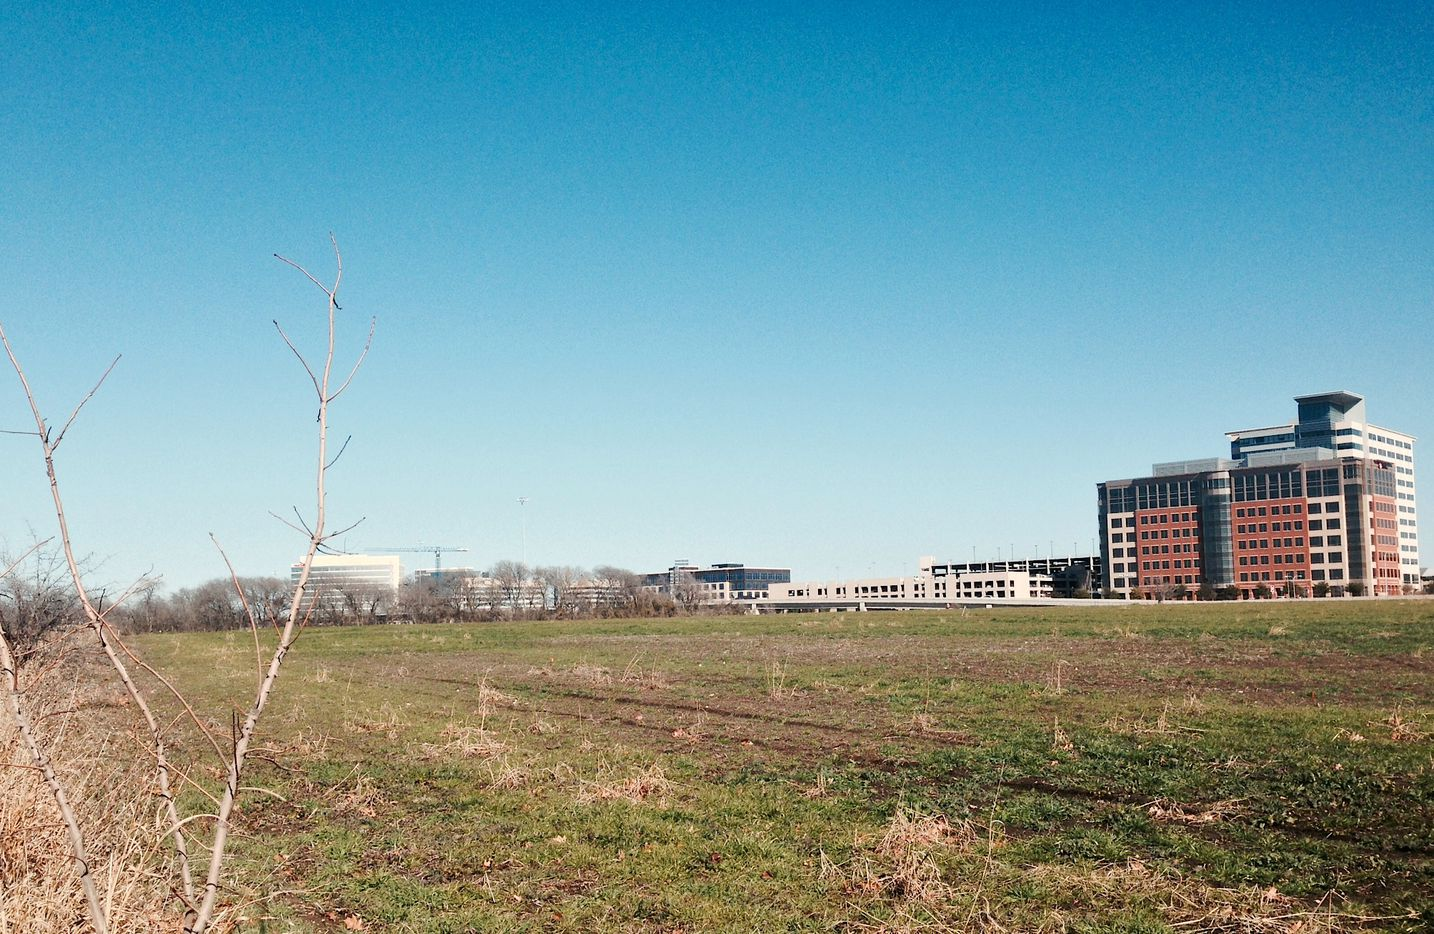 Three years ago the Legacy West Urban Village site was just a vacant field on the Dallas North Tollway.